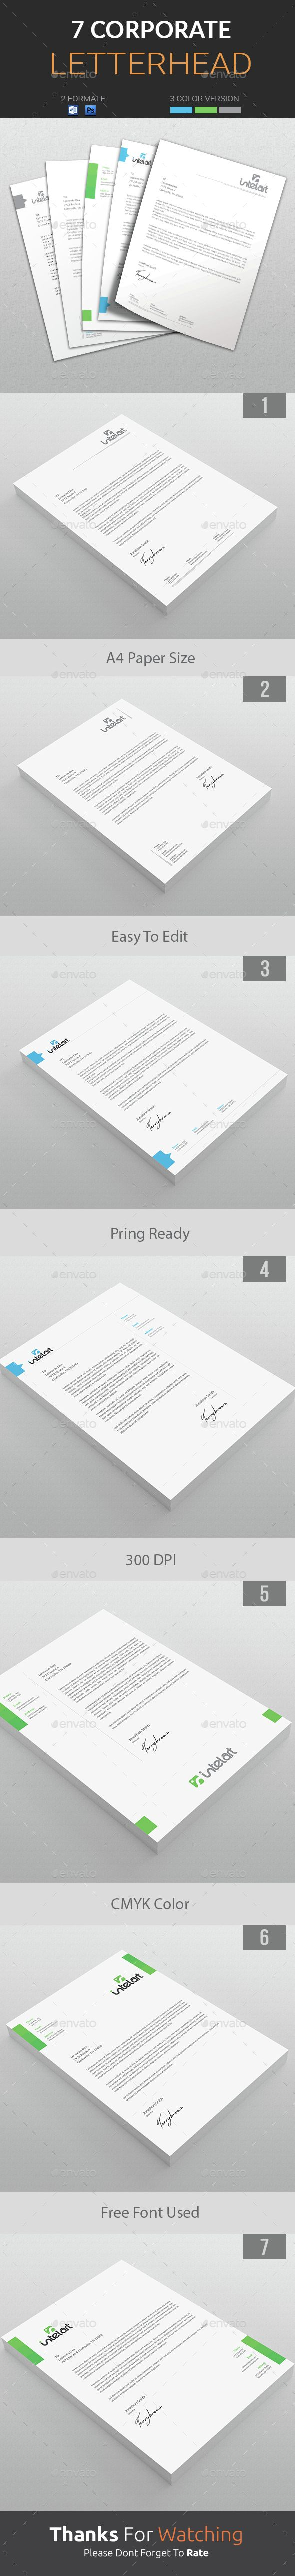 Company #Letterhead Template is an awesome letterhead design suitable for companies and individual entrepreneurs. Download http://graphicriver.net/item/letterhead/15112460?ref=themedevisers